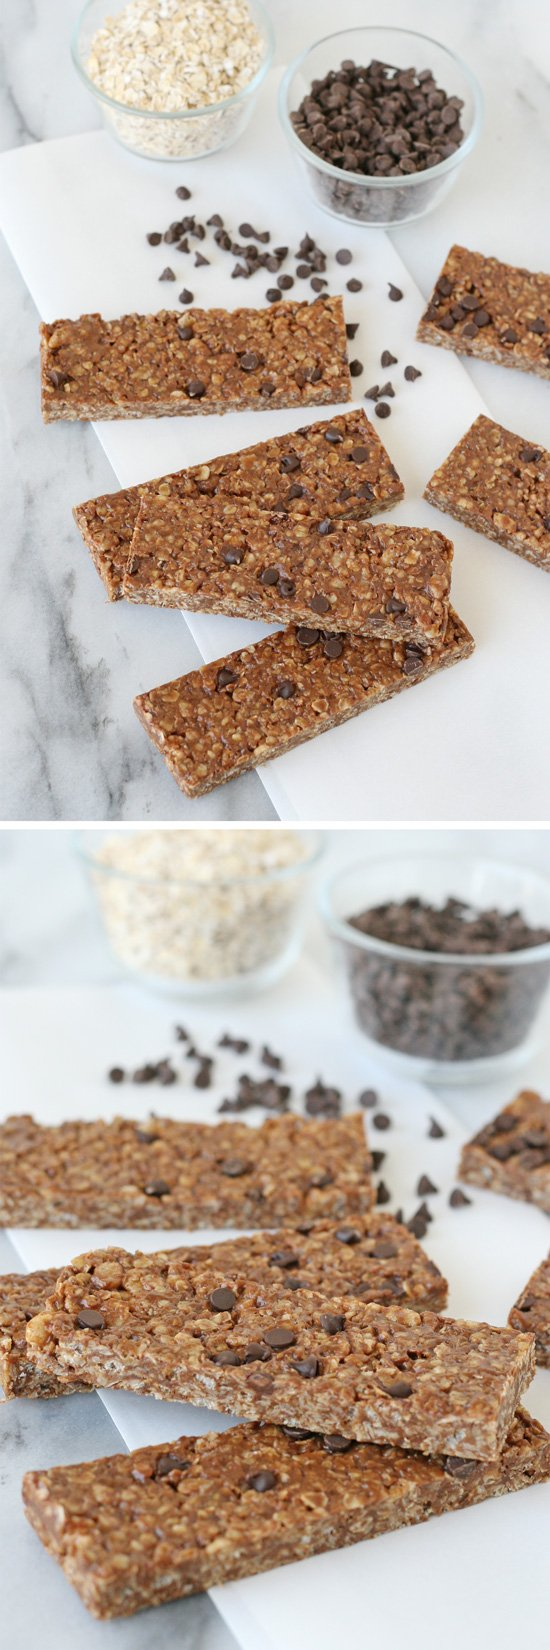 Easy, healthy and delicious!! Homemade Peanut Butter Chocolate Chip Granola Bars